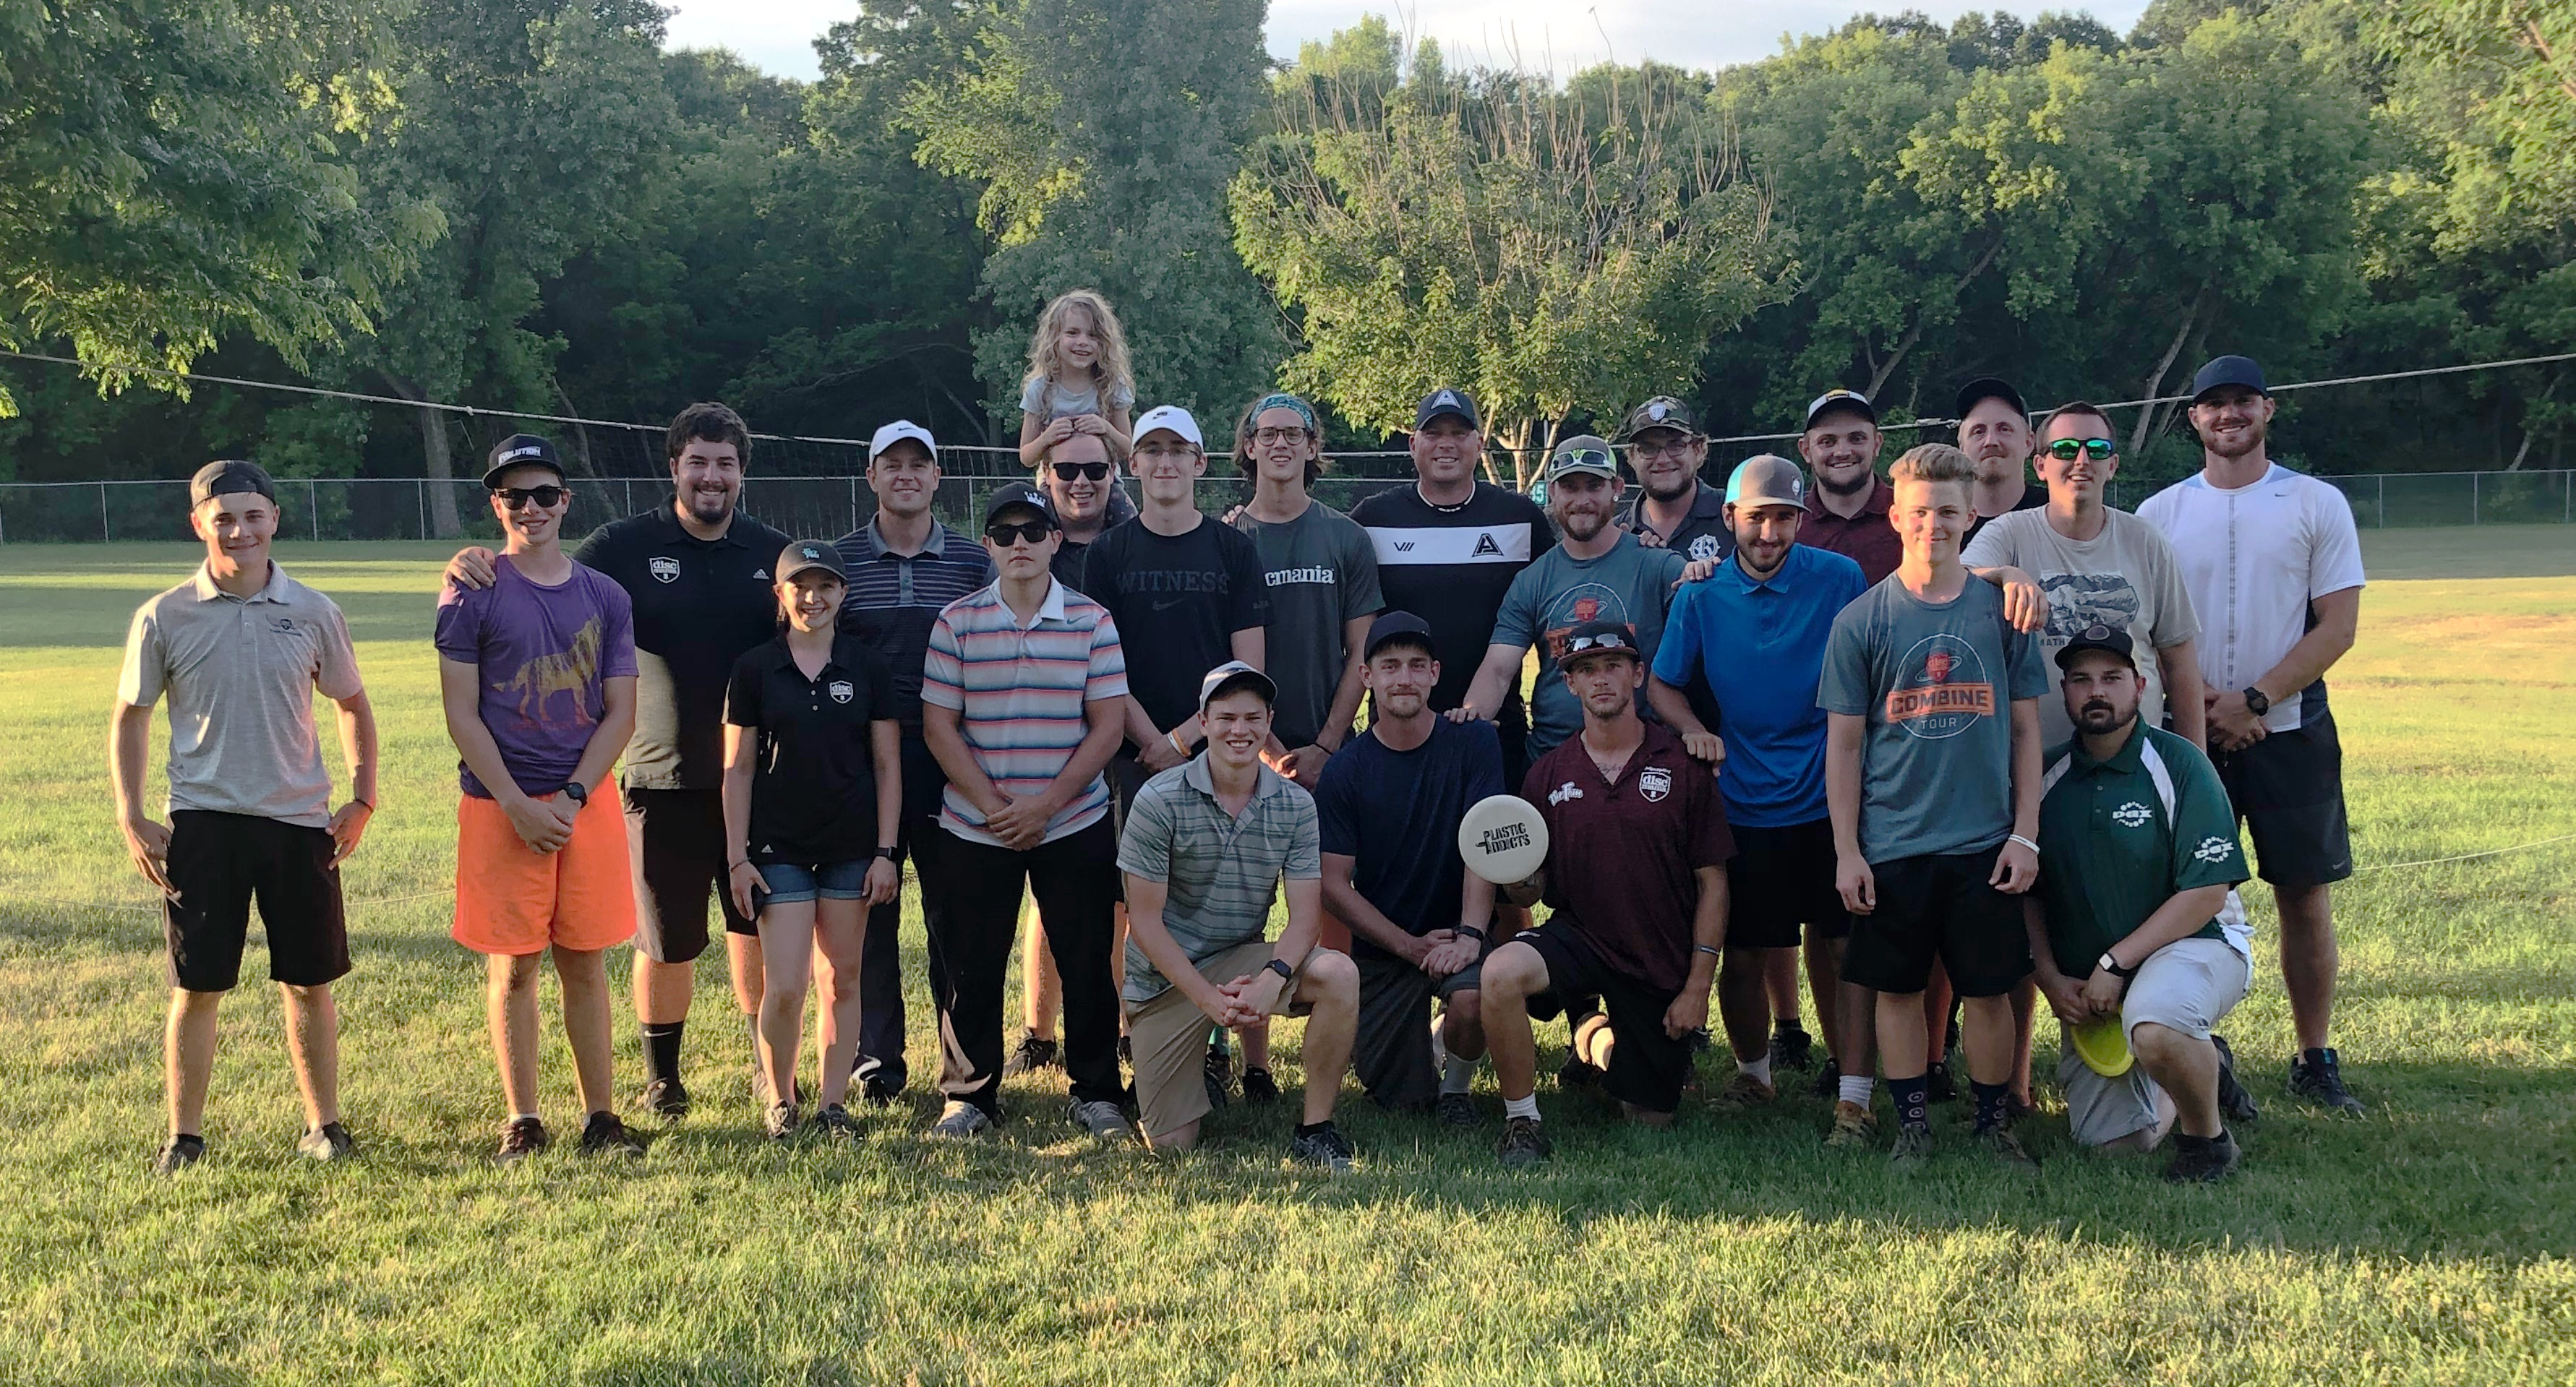 Discmania Combine in Minnesota